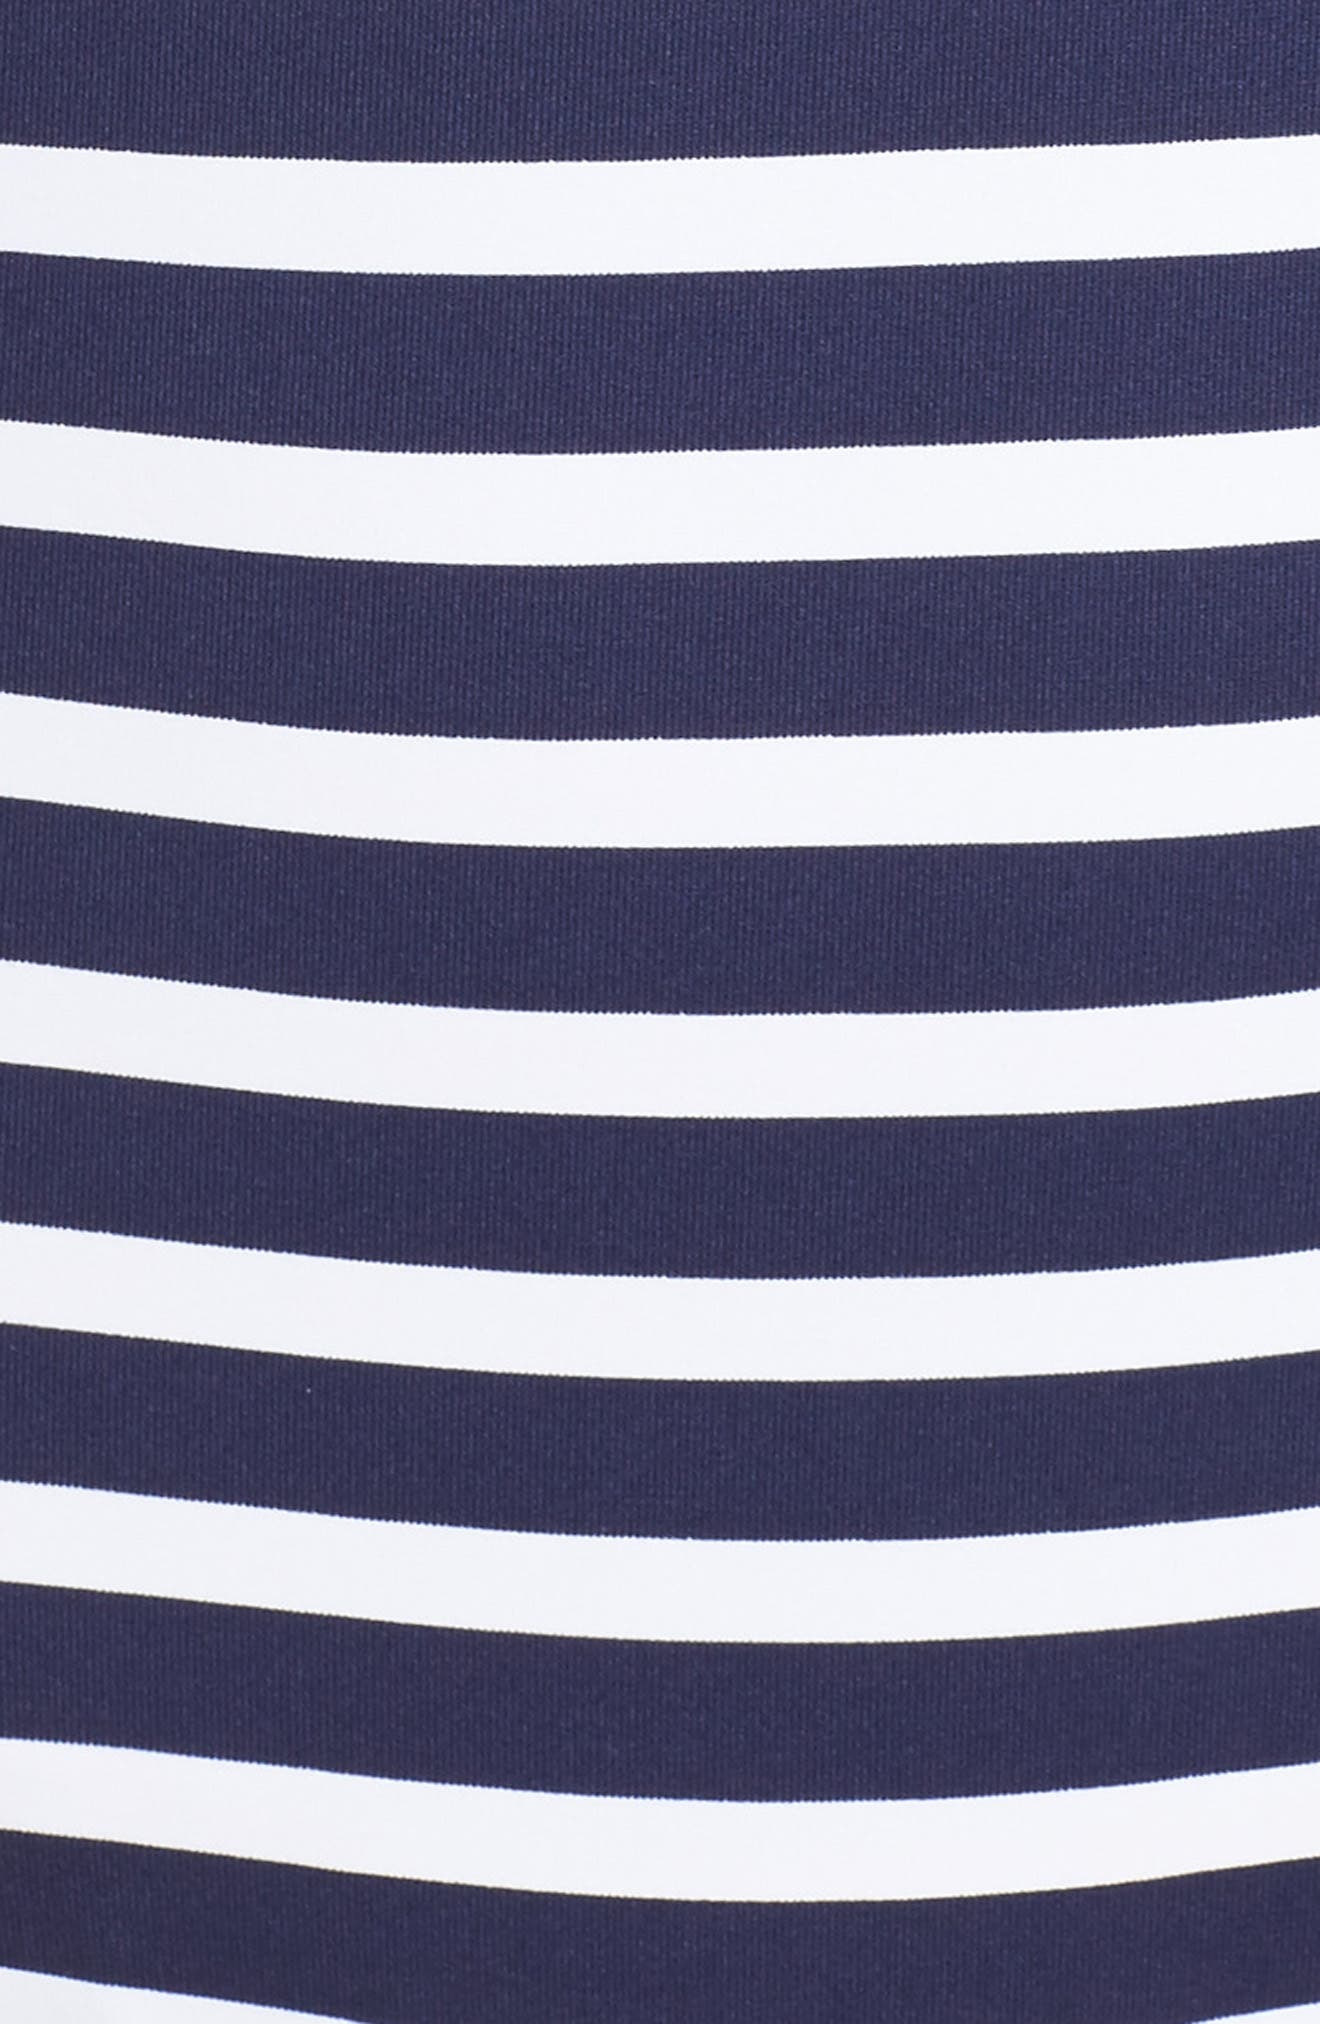 Breton Stripe One-Piece Swimsuit,                             Alternate thumbnail 5, color,                             Mare Navy/ White